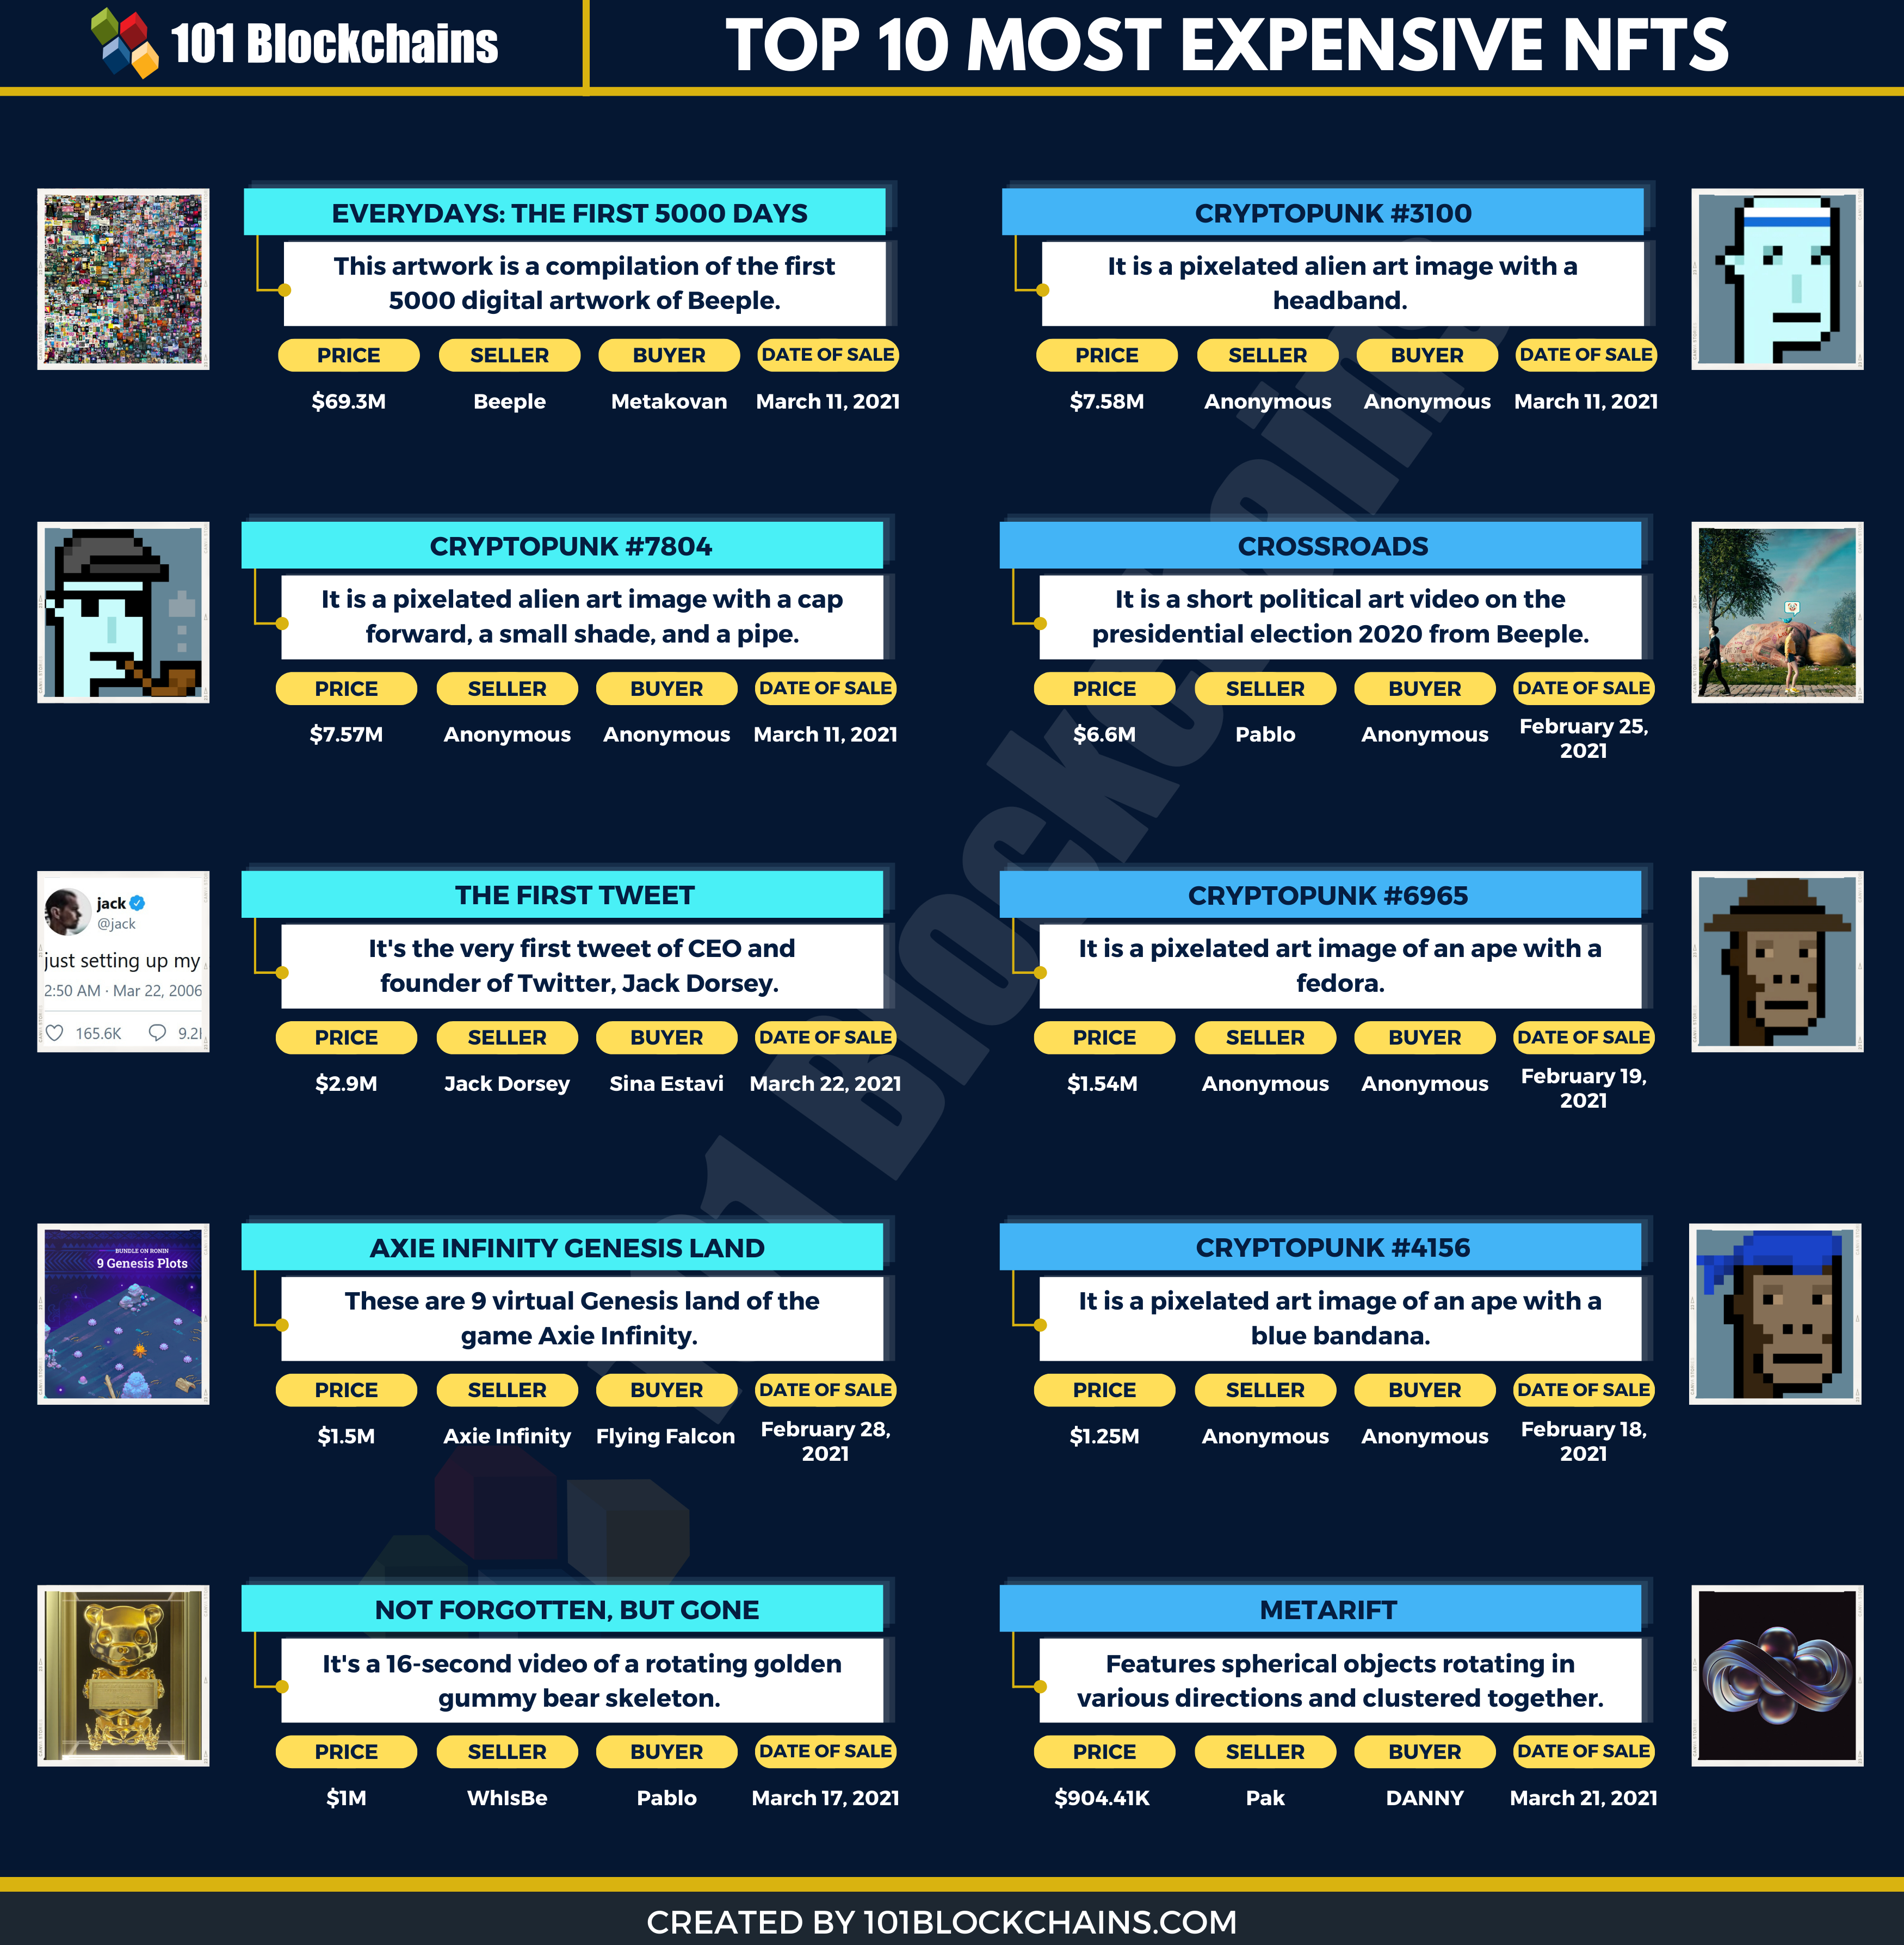 top 10 most expensive nfts